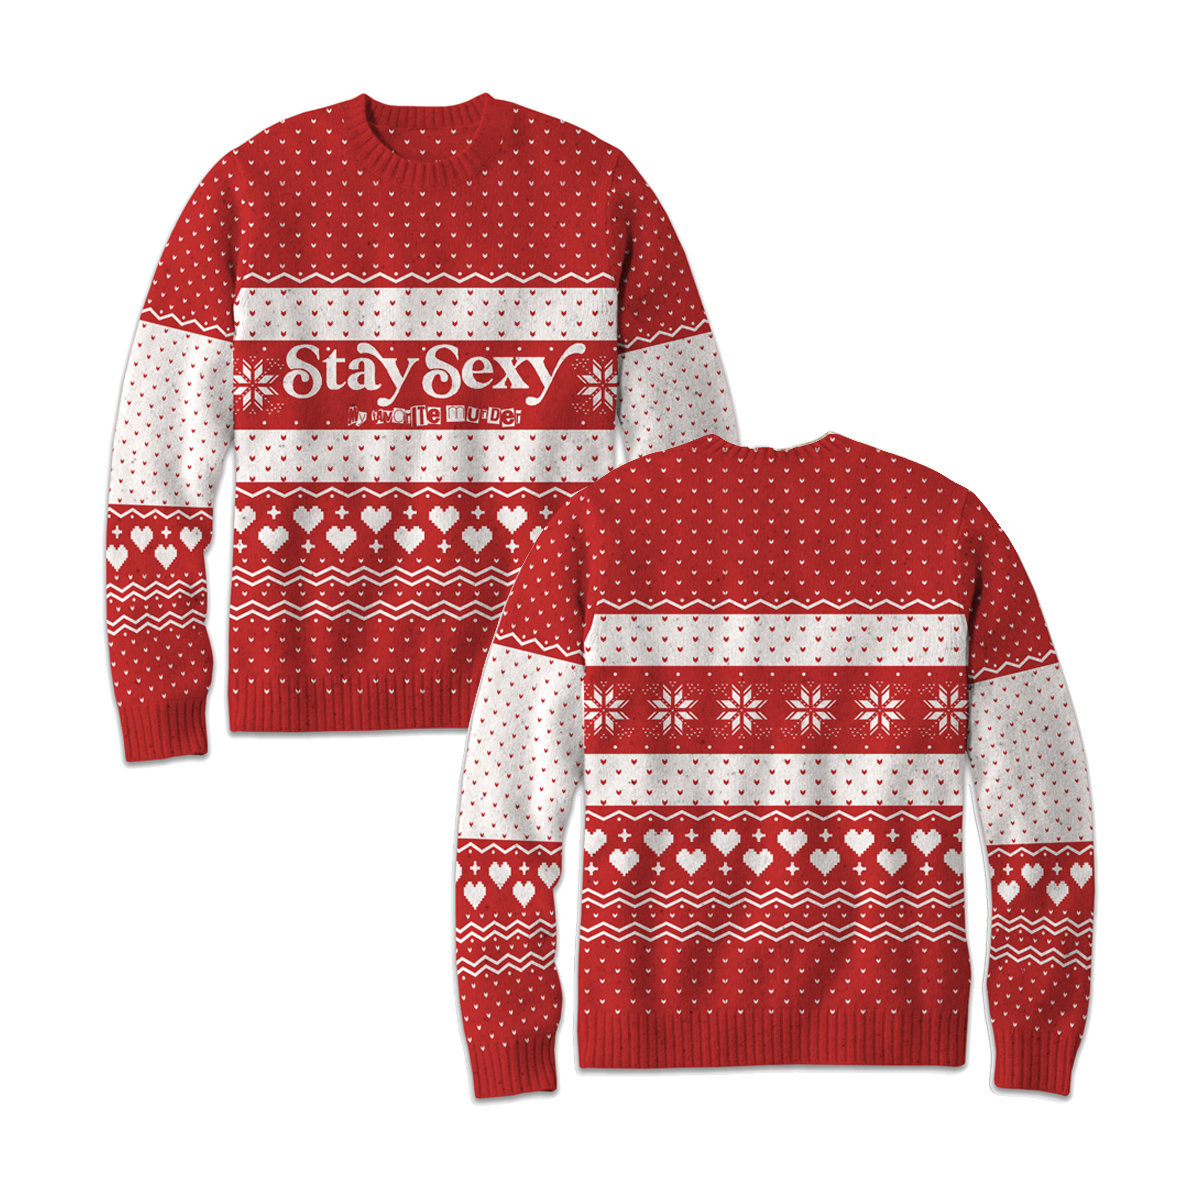 Stay Sexy Woven Sweater